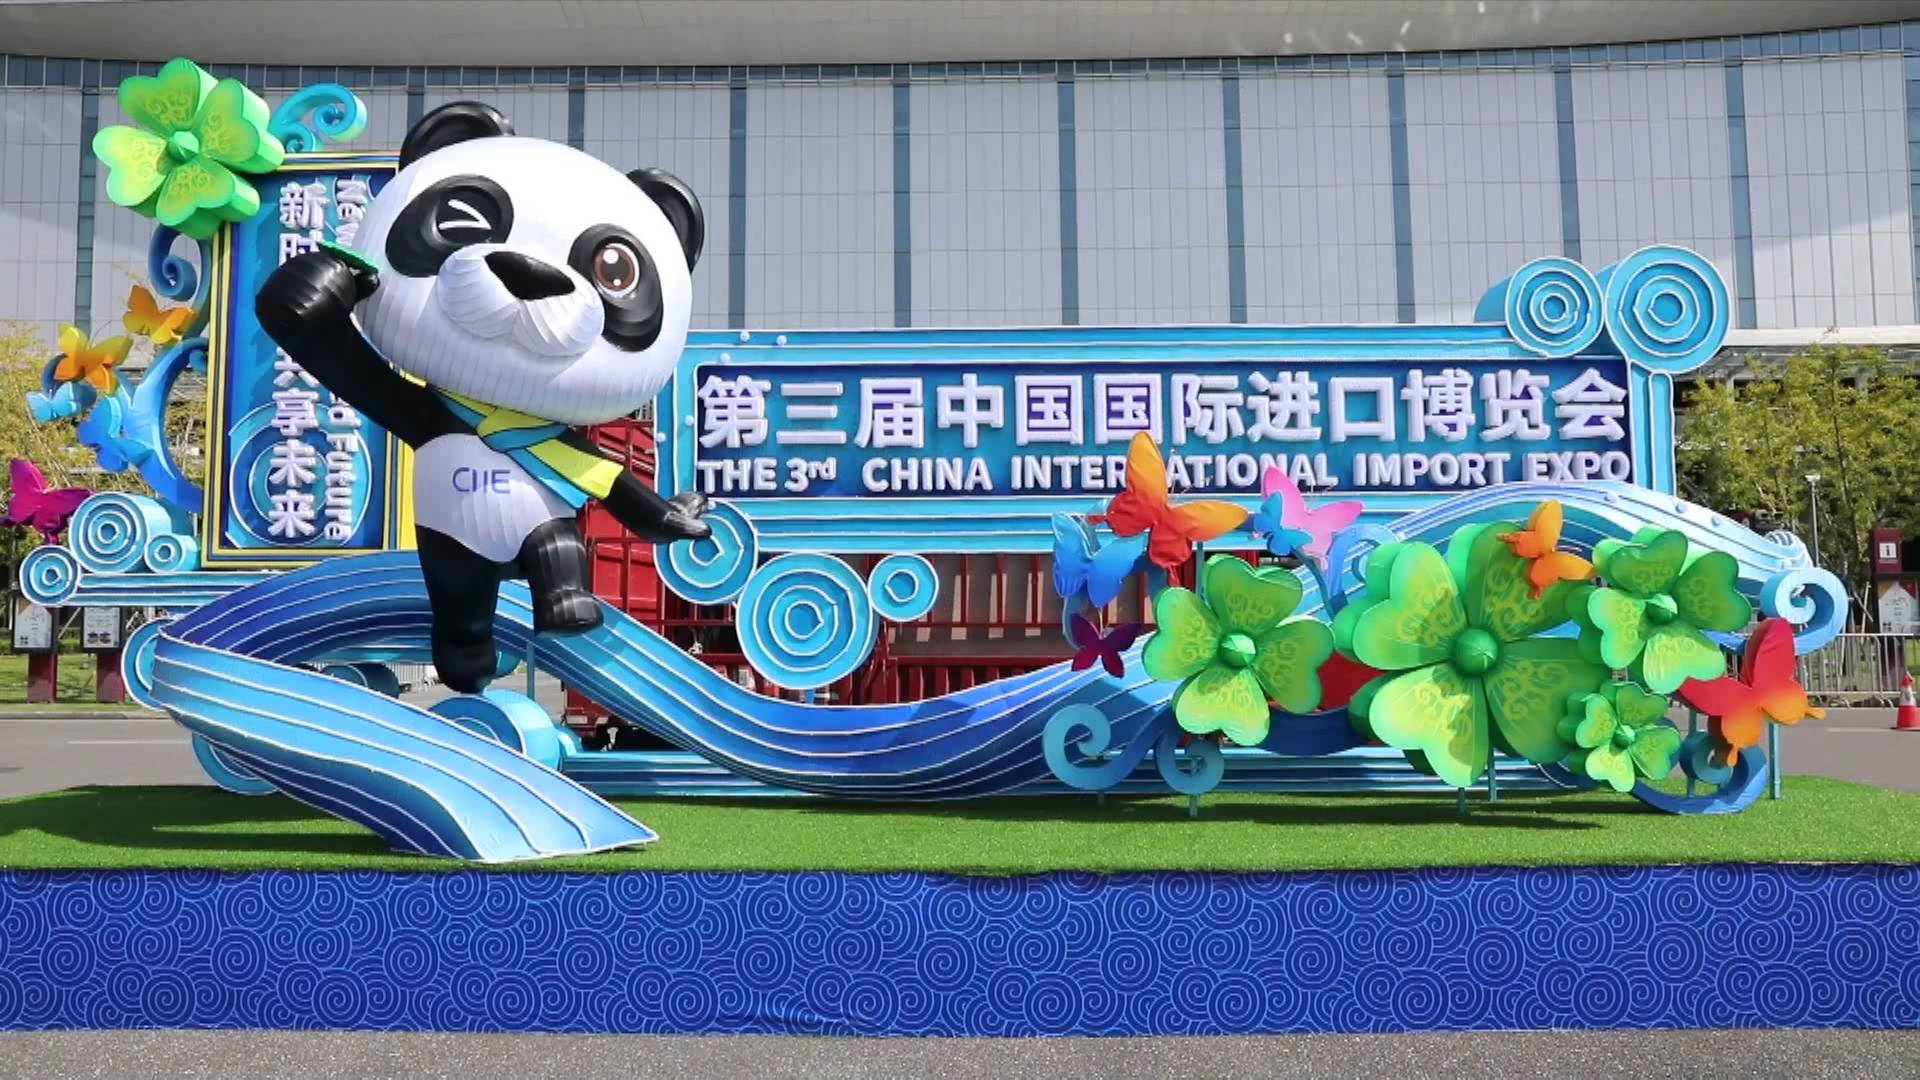 China's import expo gives opportunities to foreign firms: Belgian expert